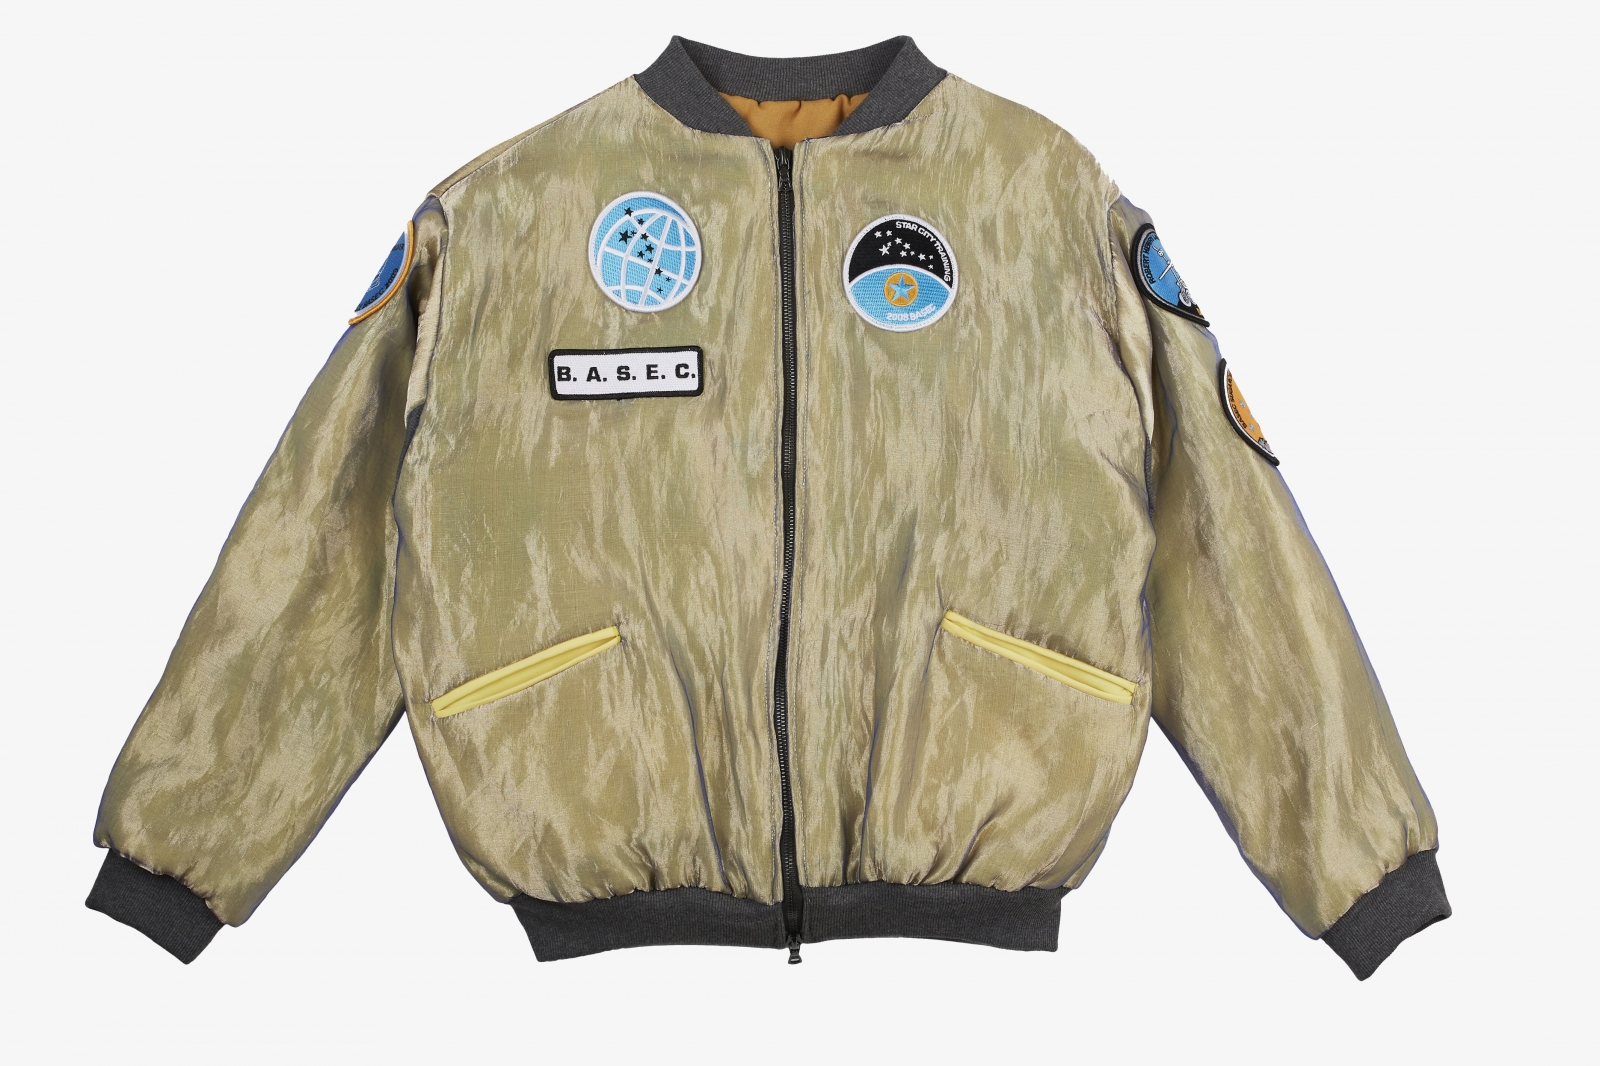 B.A.S.E.C. Yellow Metal Bomber Jacket